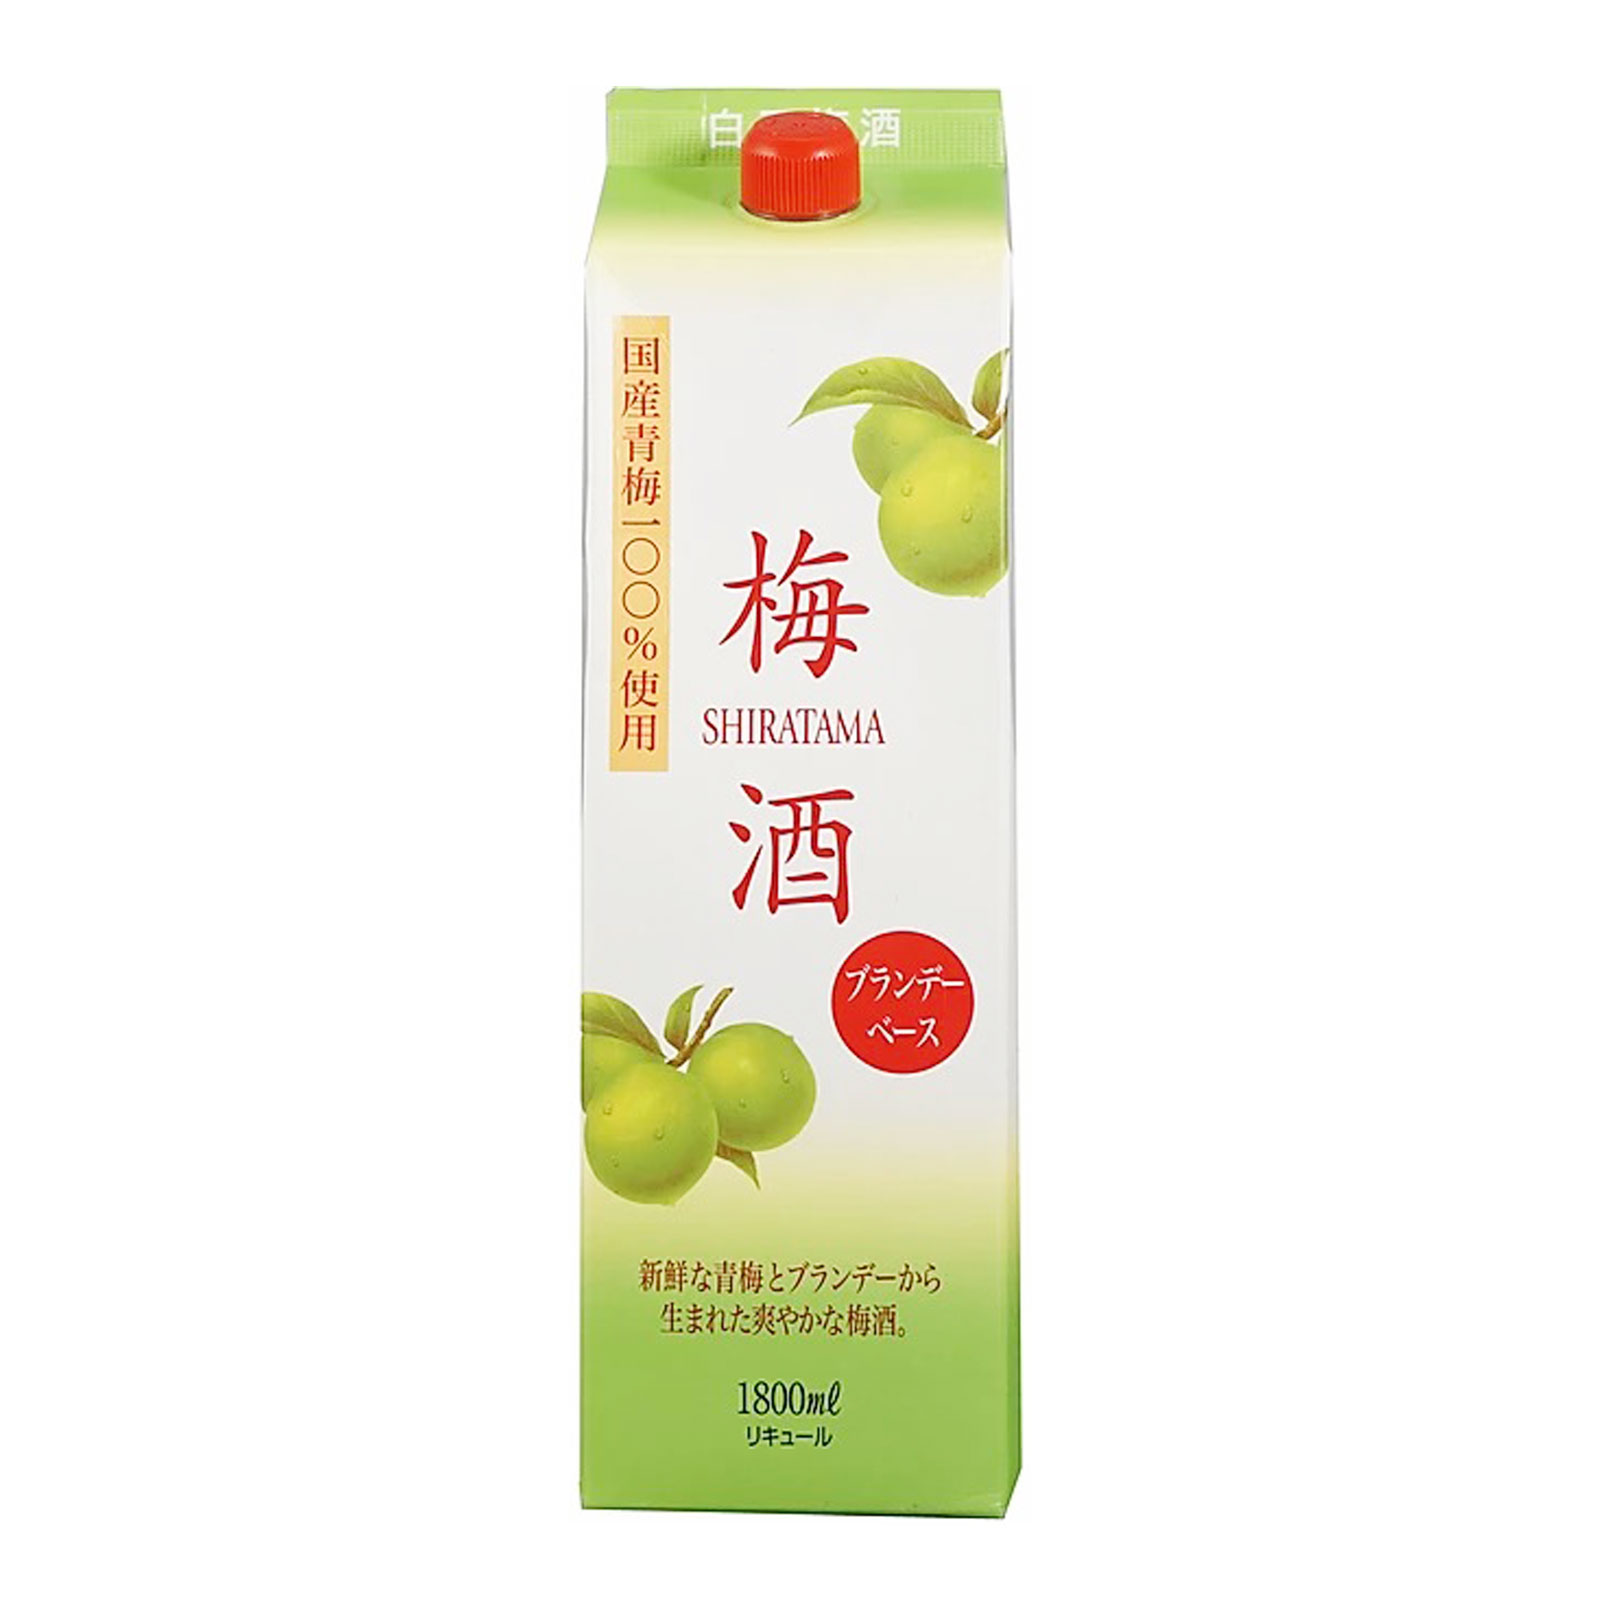 Shiratama Umeshu With Brandy Pack 12% 1800ml